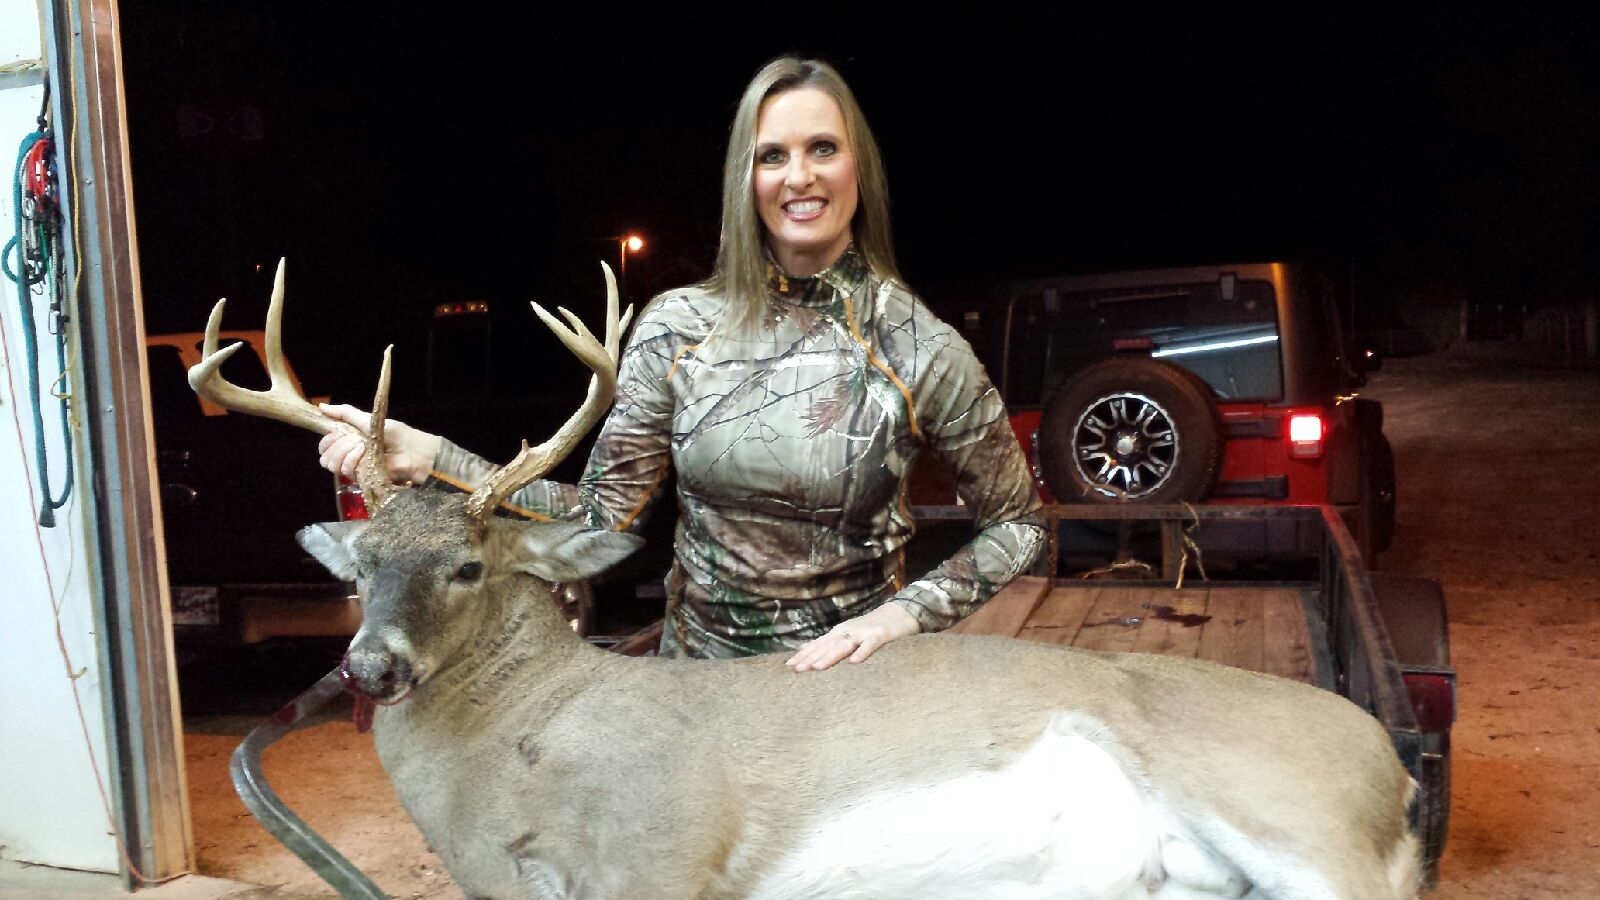 Women Who are Deer Hunters: 3 Million and Counting